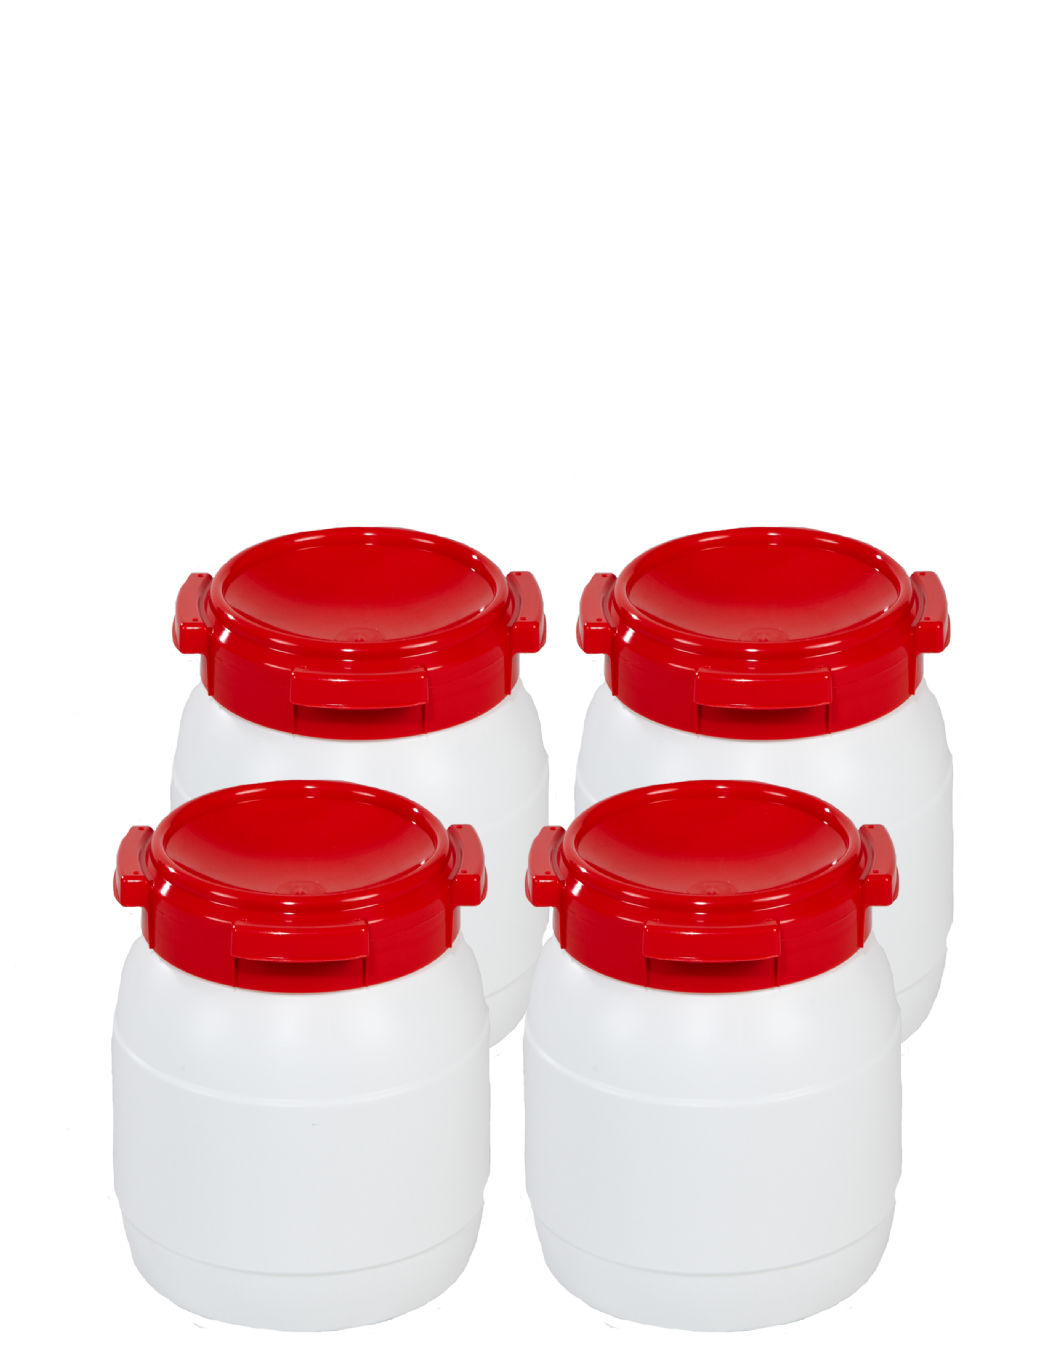 10 Litre Wide Neck Plastic Drum - Pack of 4 Drums